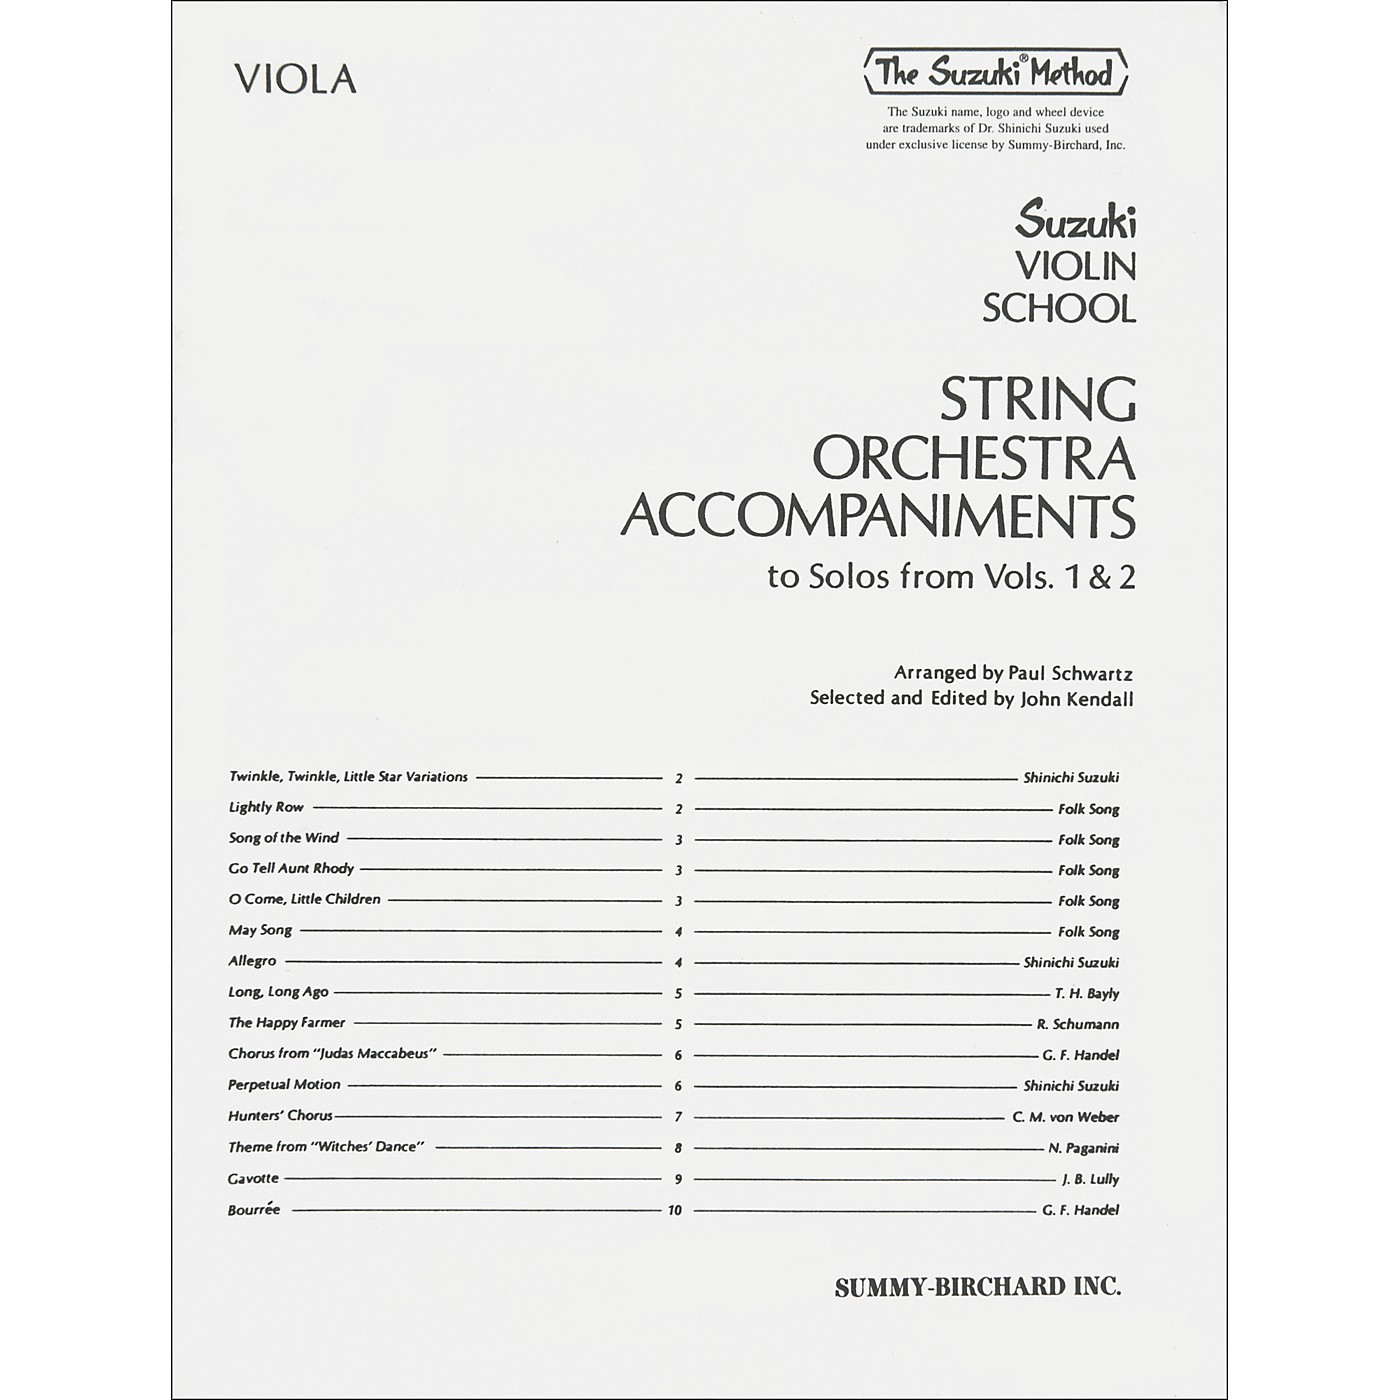 Alfred Suzuki String Orchestra Accompaniments to Solos from Volumes 1 & 2 for Viola Book thumbnail